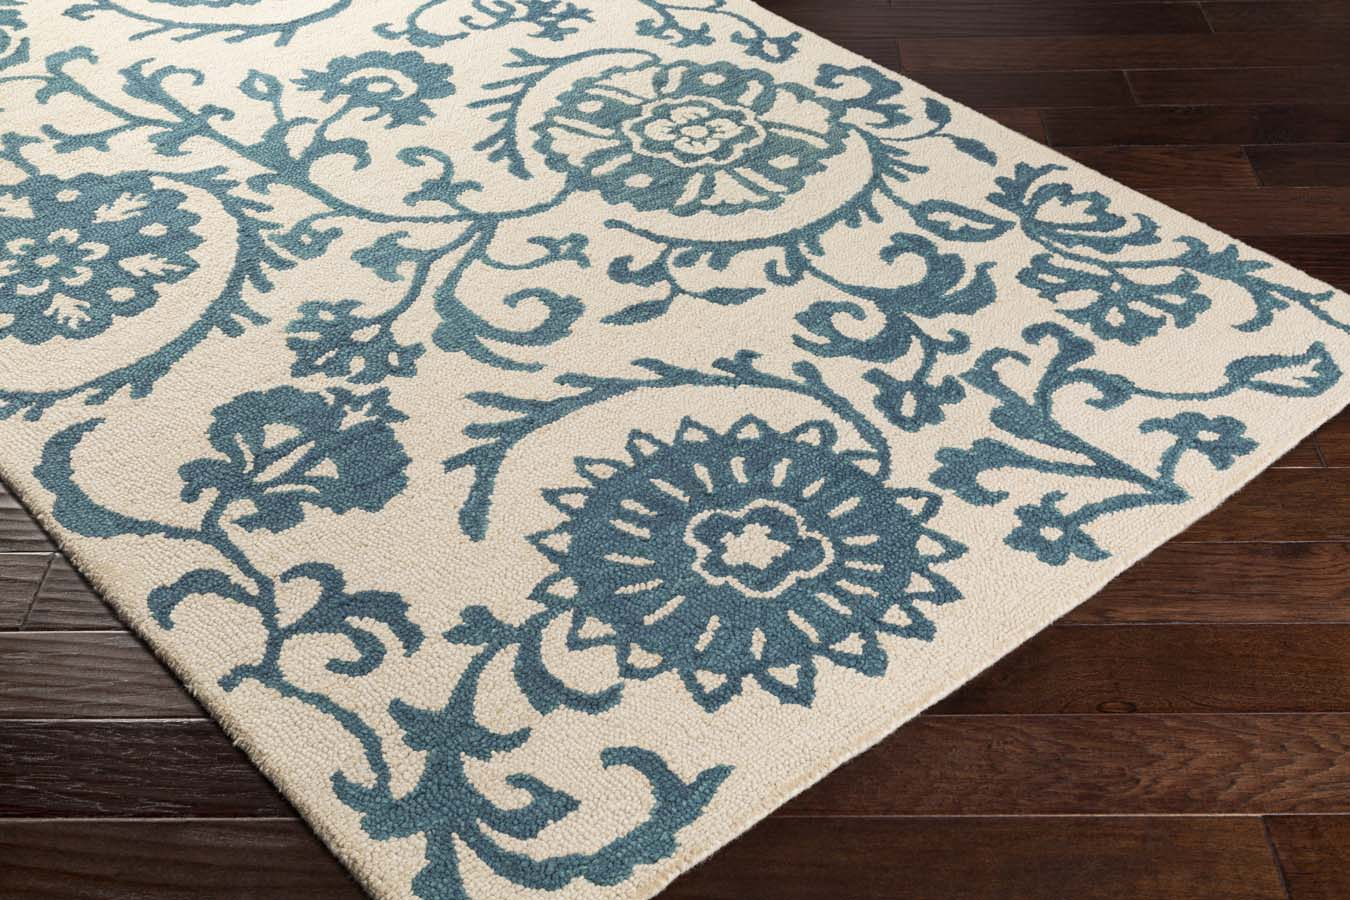 Artistic Weavers RHODES RDS-2315 Maggie Teal Blue/Off-White Rug